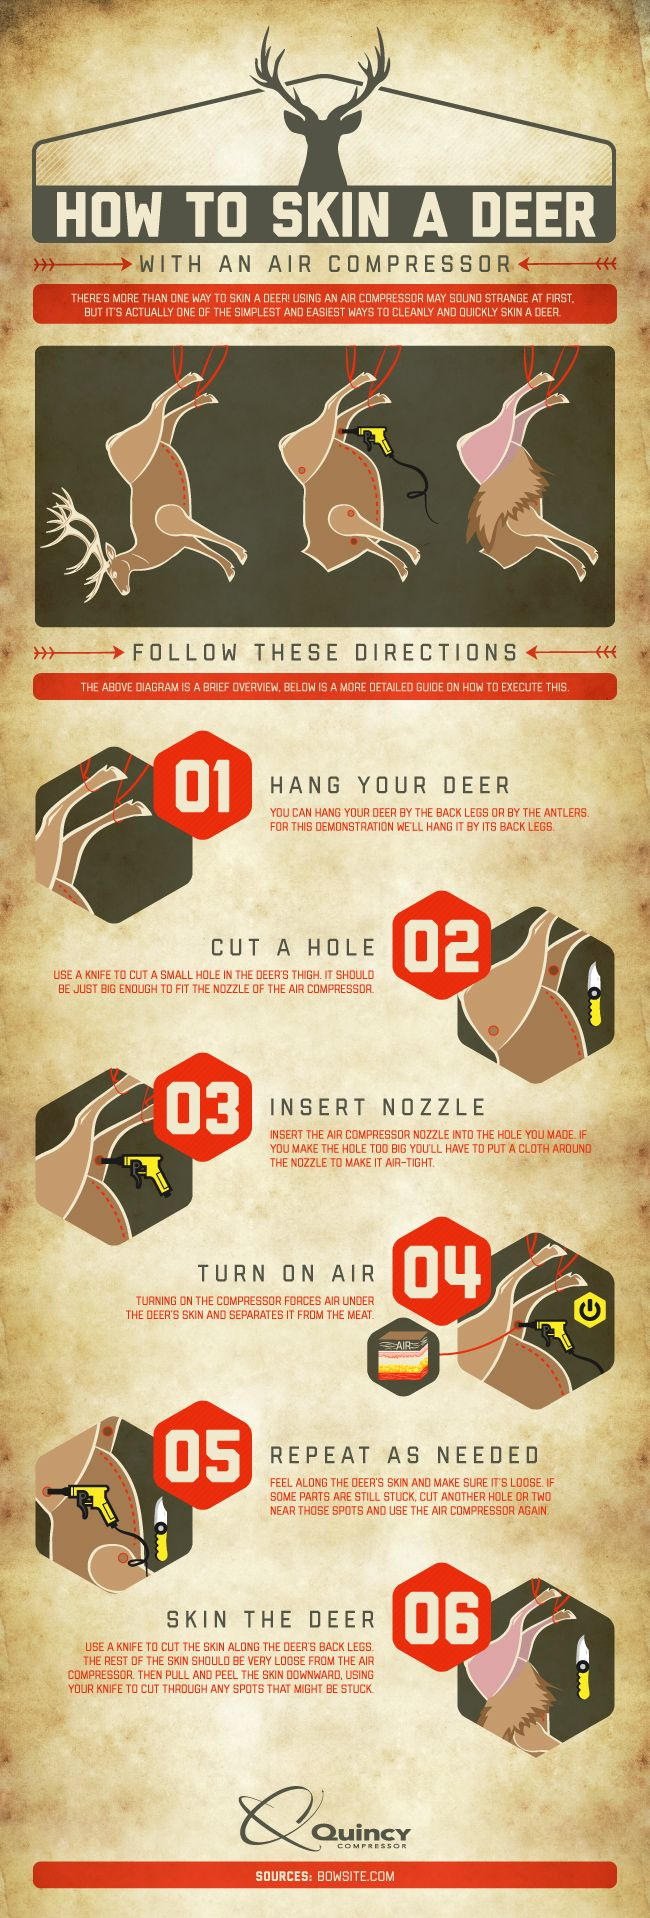 Skinning a deer this hunting season doesn't have to be difficult. Check out Quincy Compressor's infographic on how to properly your next doe/buck this hunting season with an air compressor.  #hunting